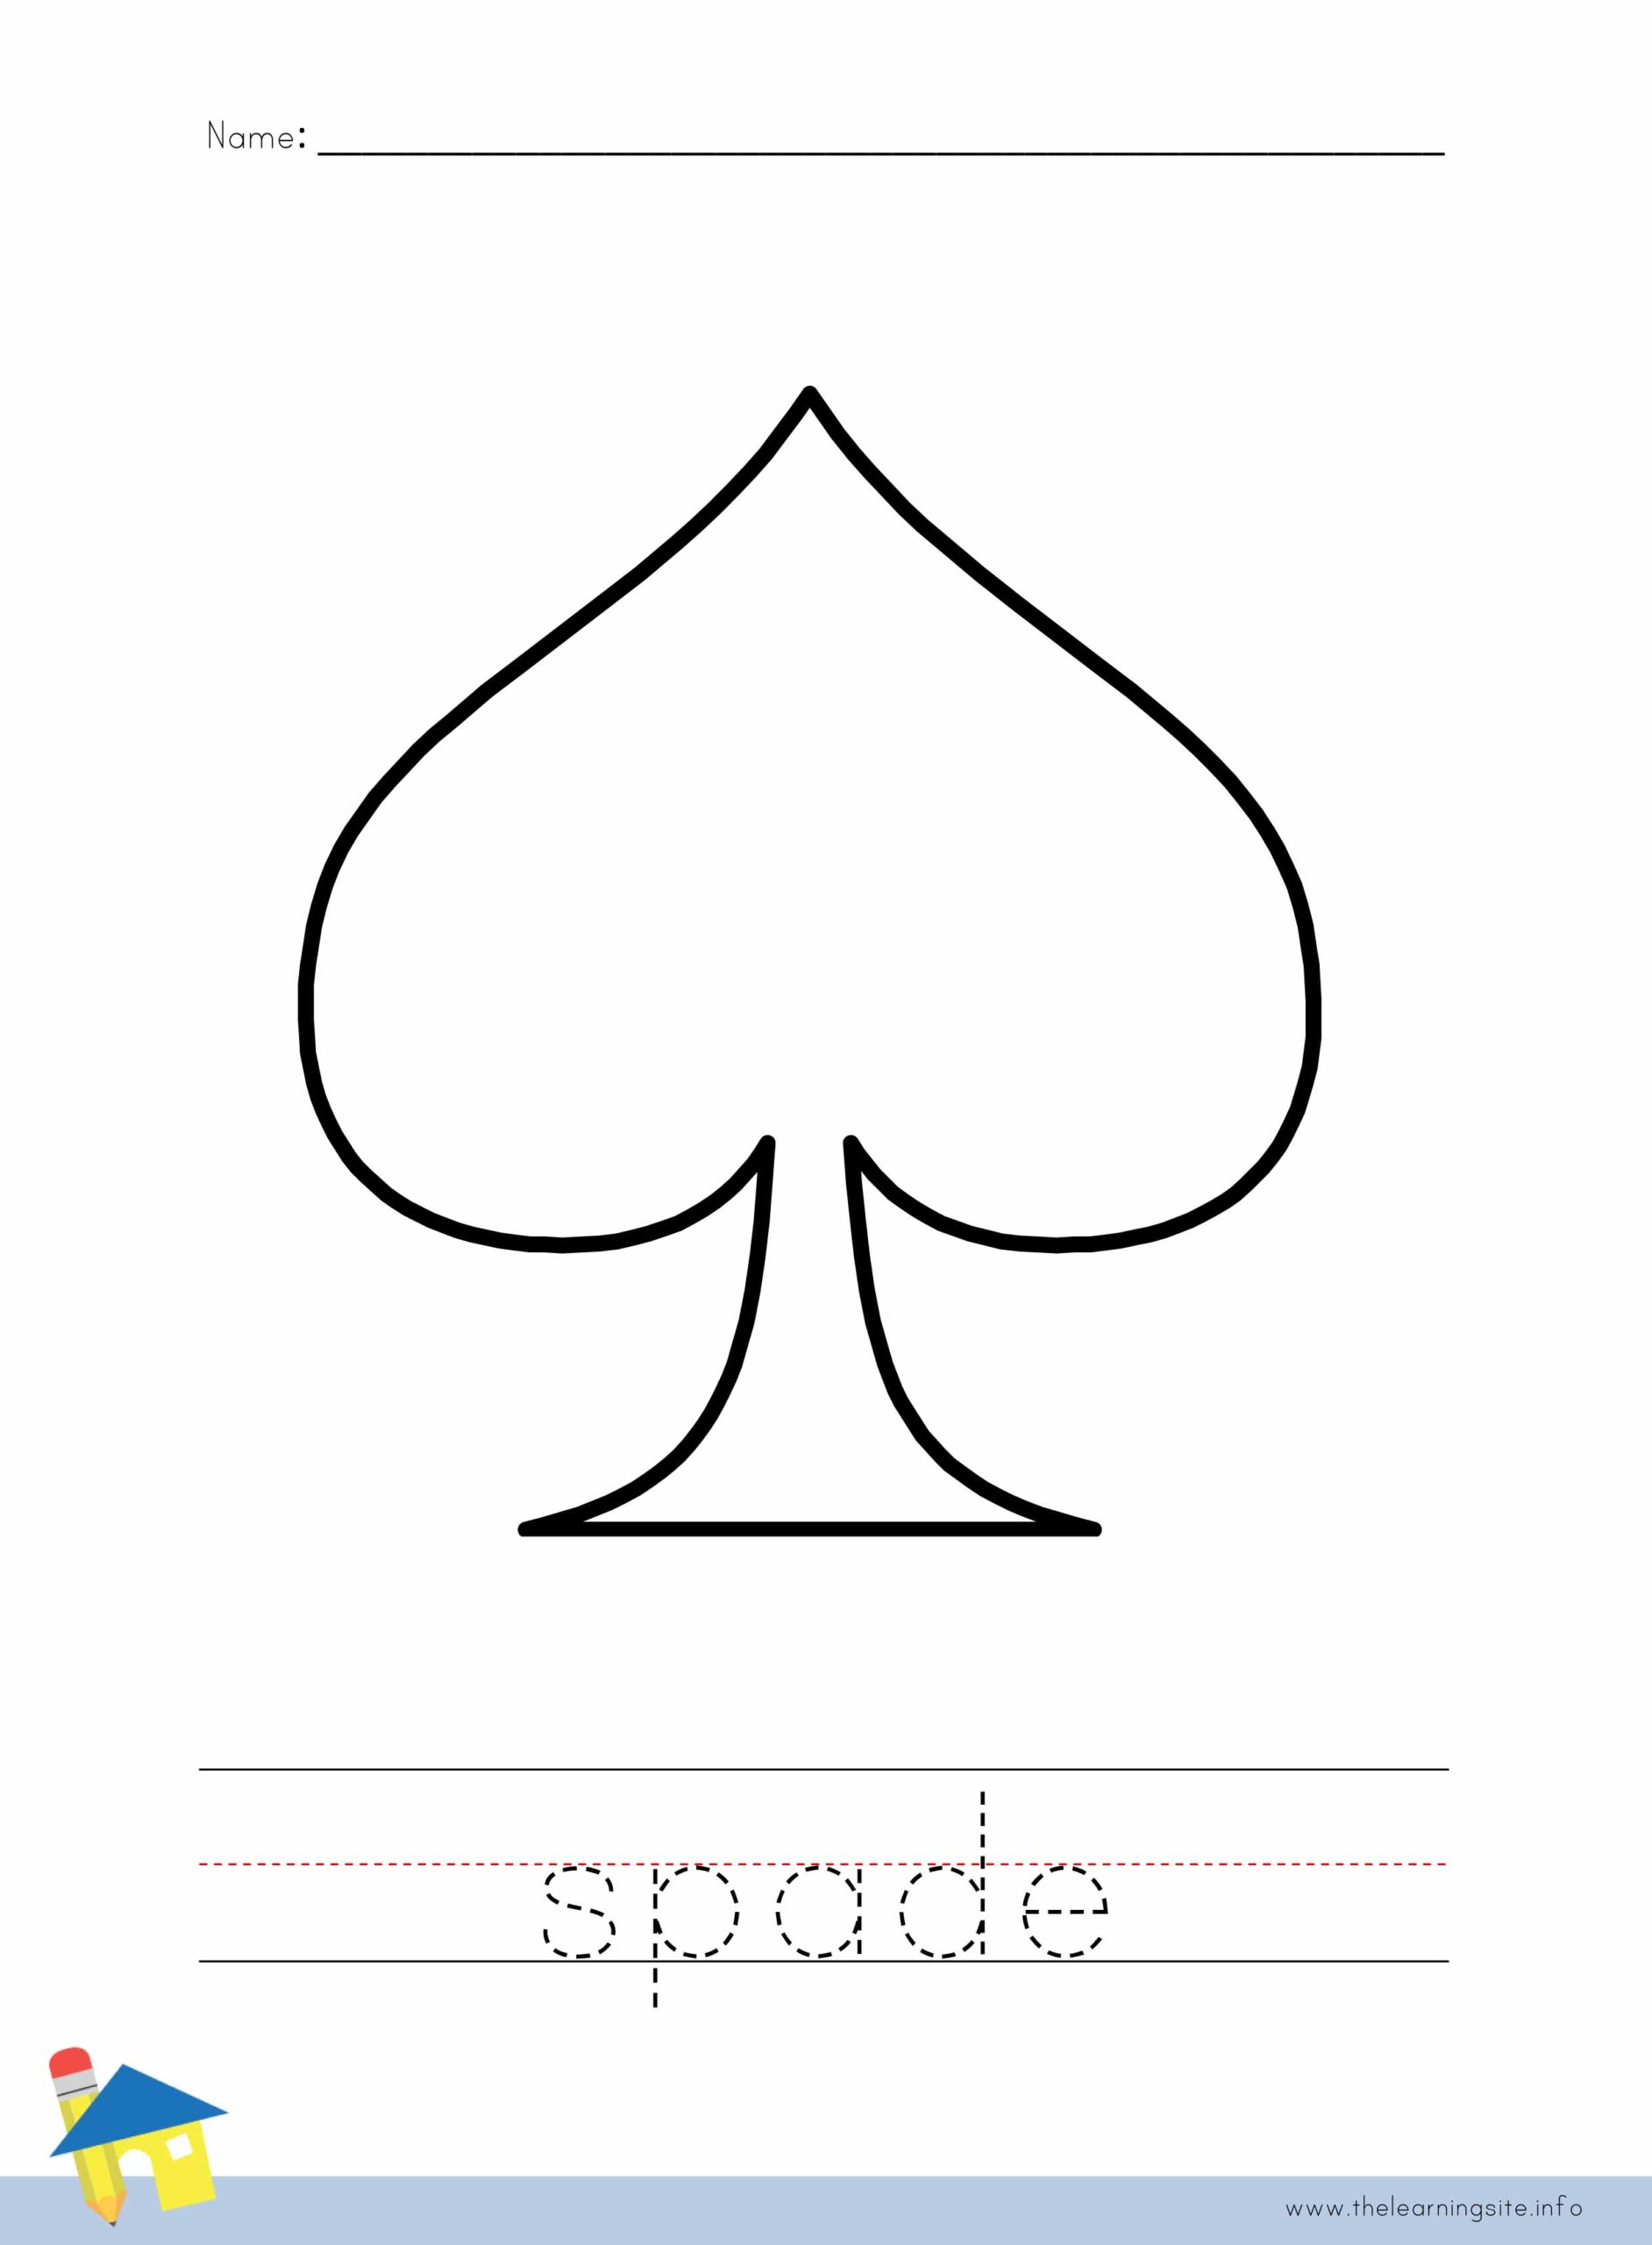 Spade Coloring Worksheet The Learning Site